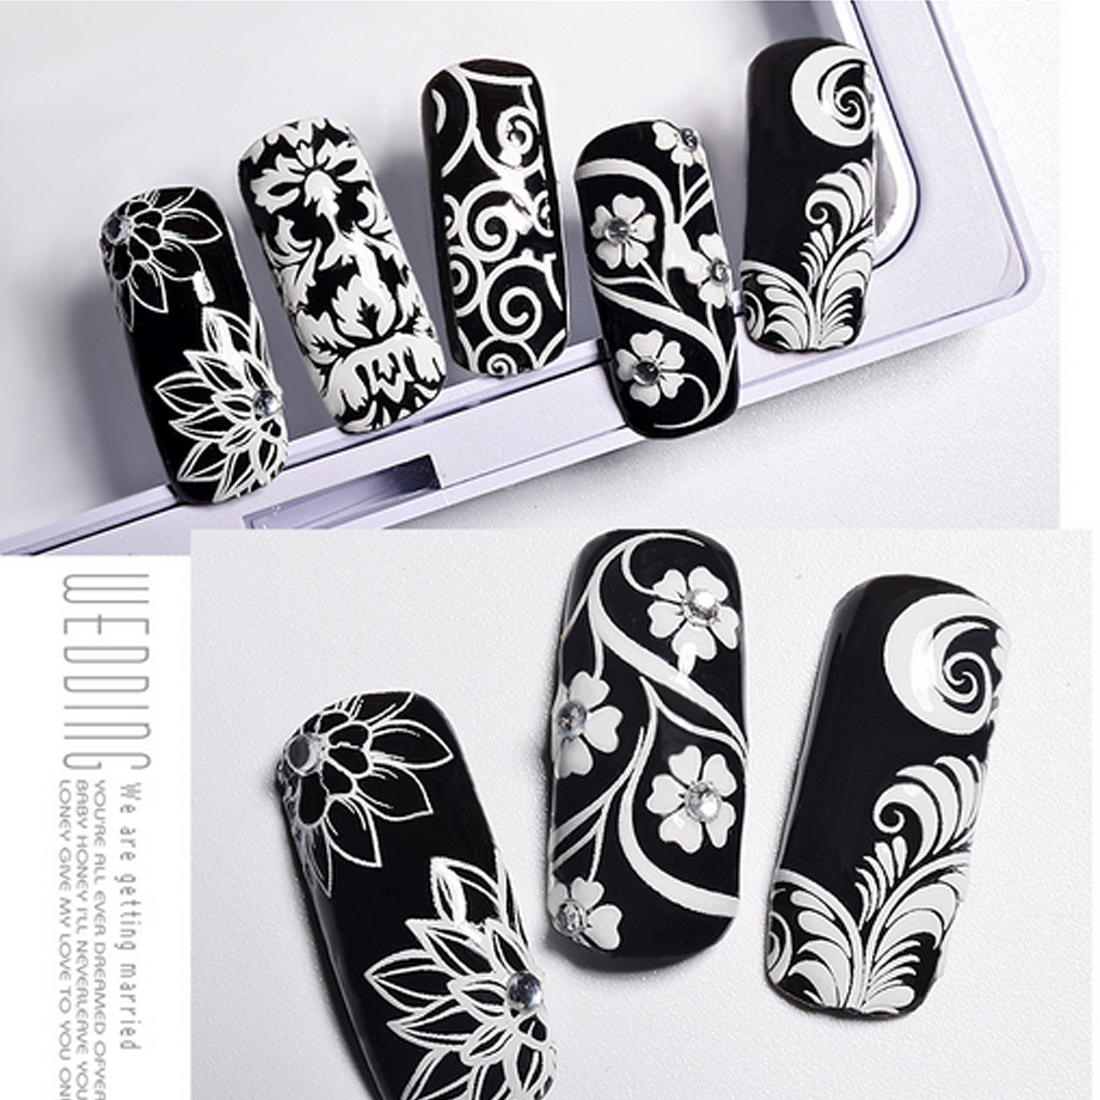 Water transfer applique black and white nail stickers full stickers nail stereo 3D nail applique nail accessories decoration